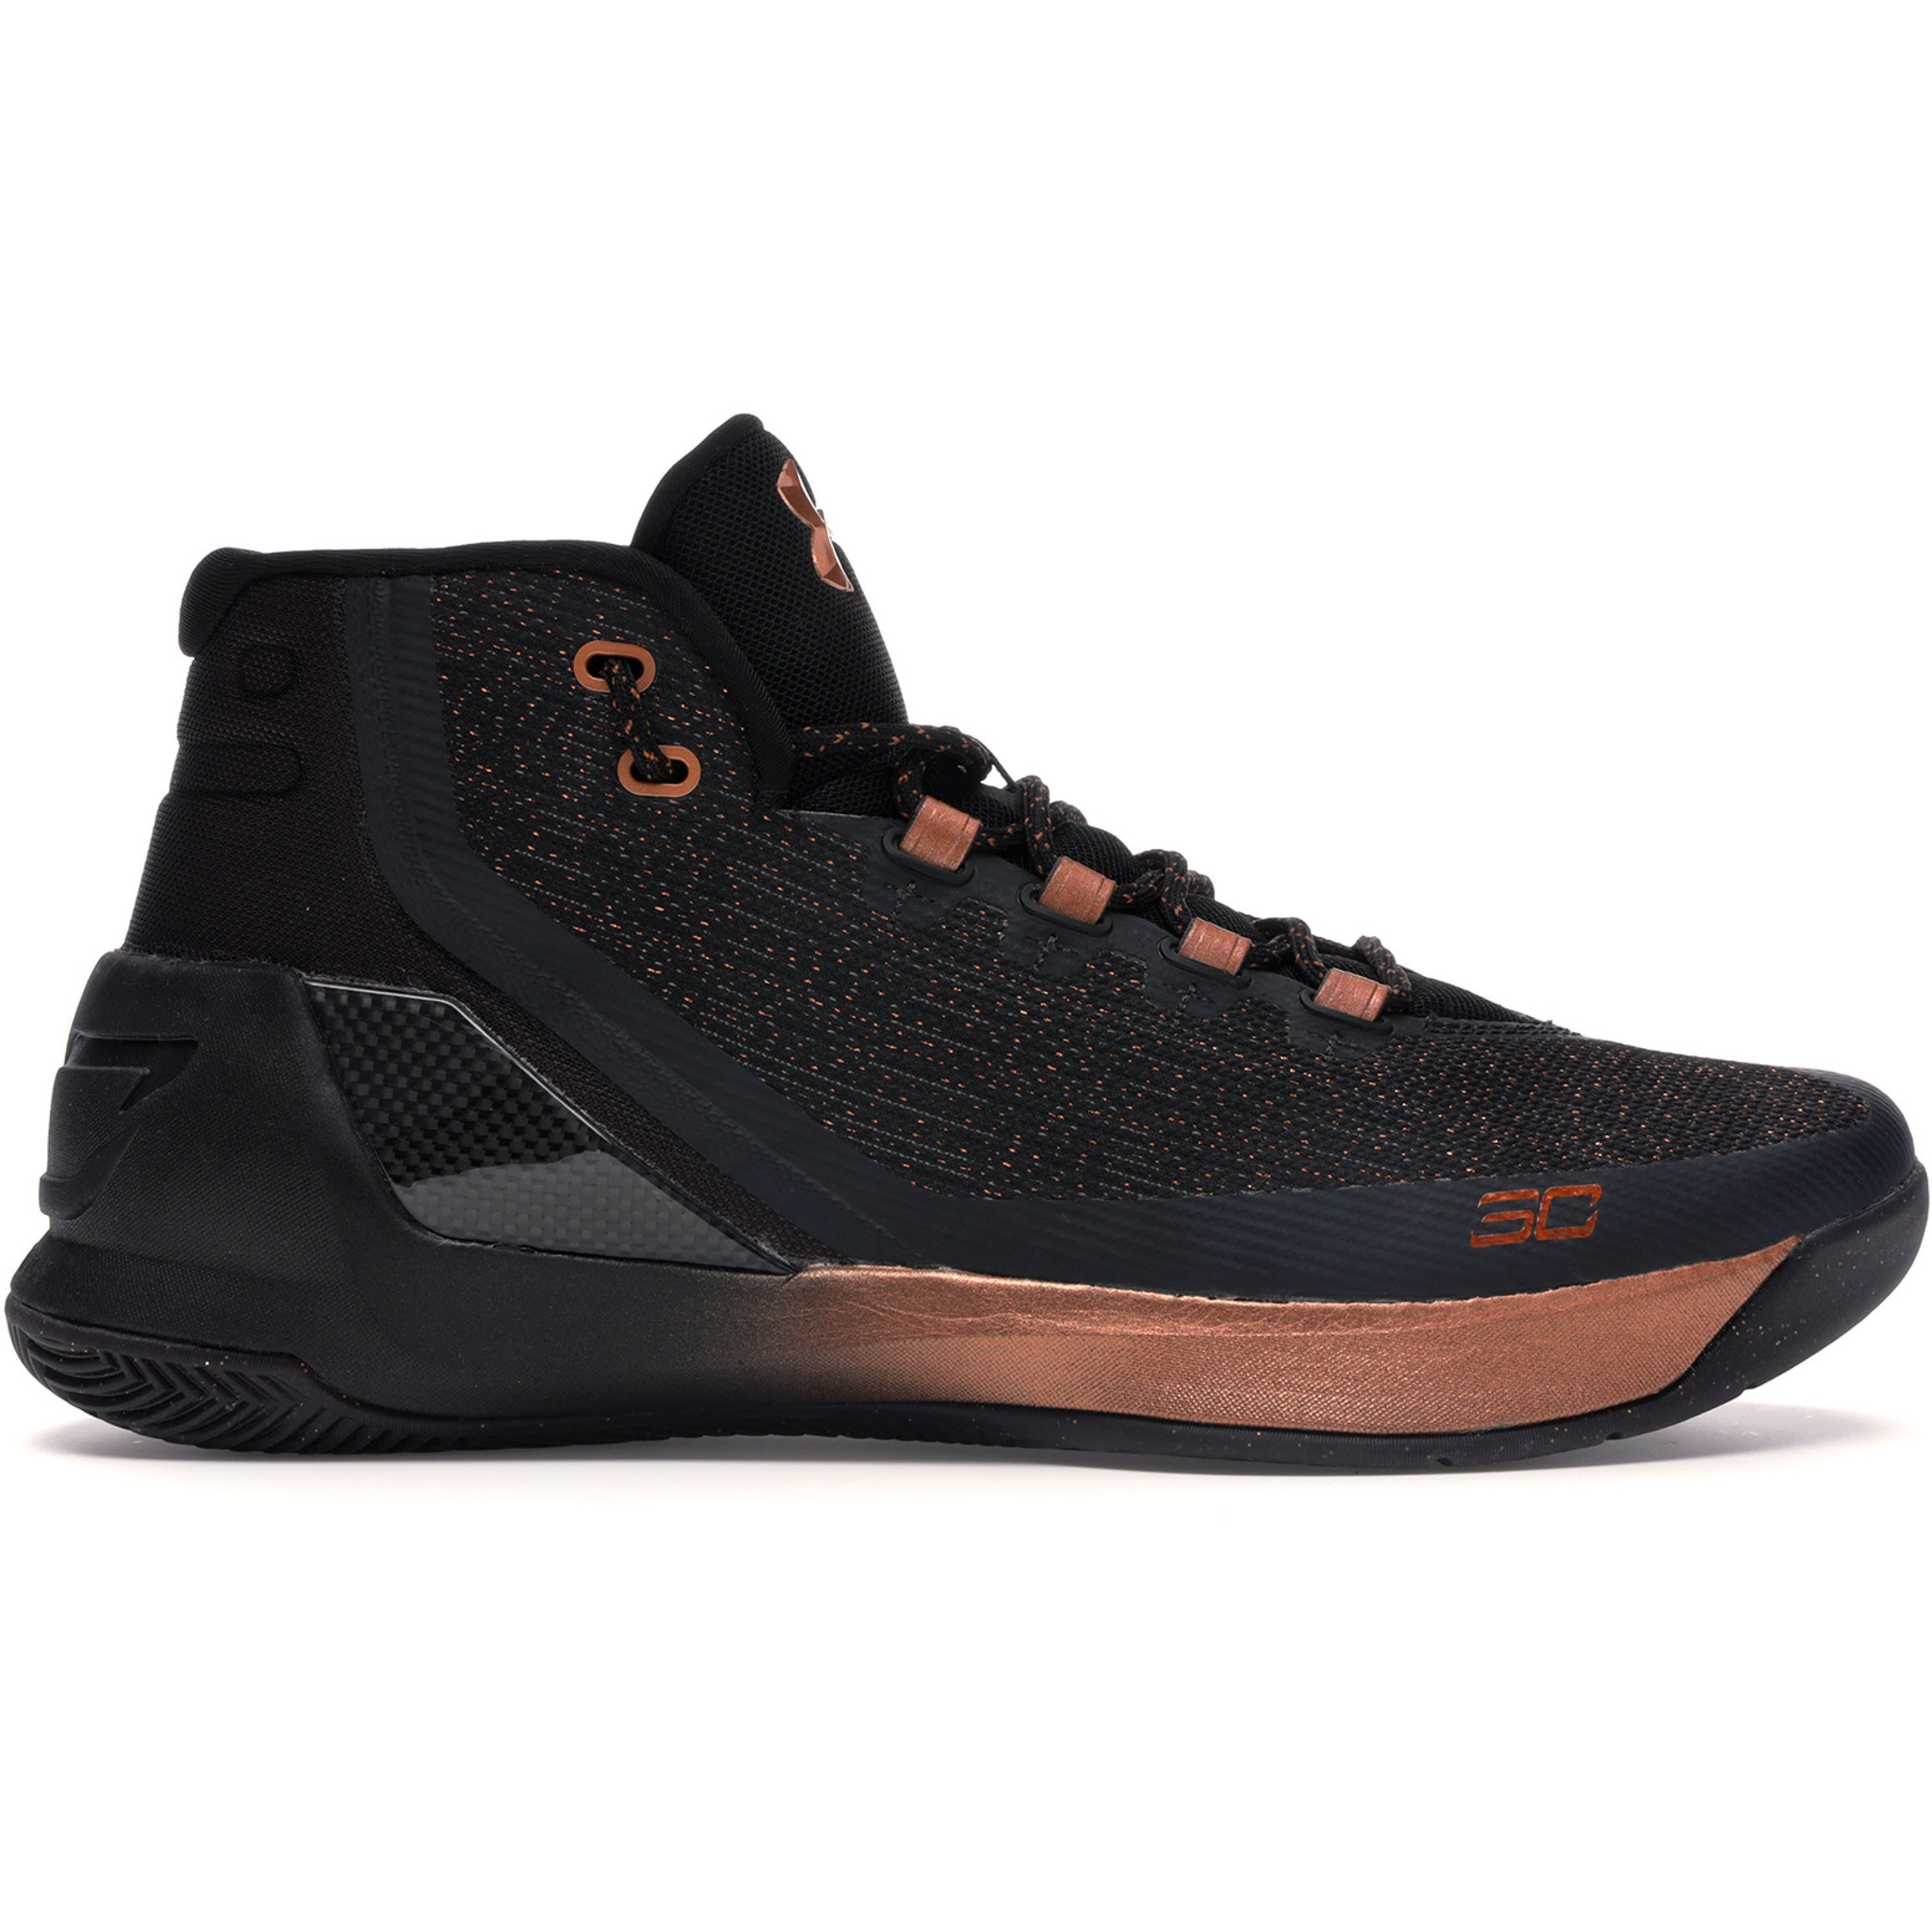 Under Armour UA Curry 3 Brass Band (1299665-001)